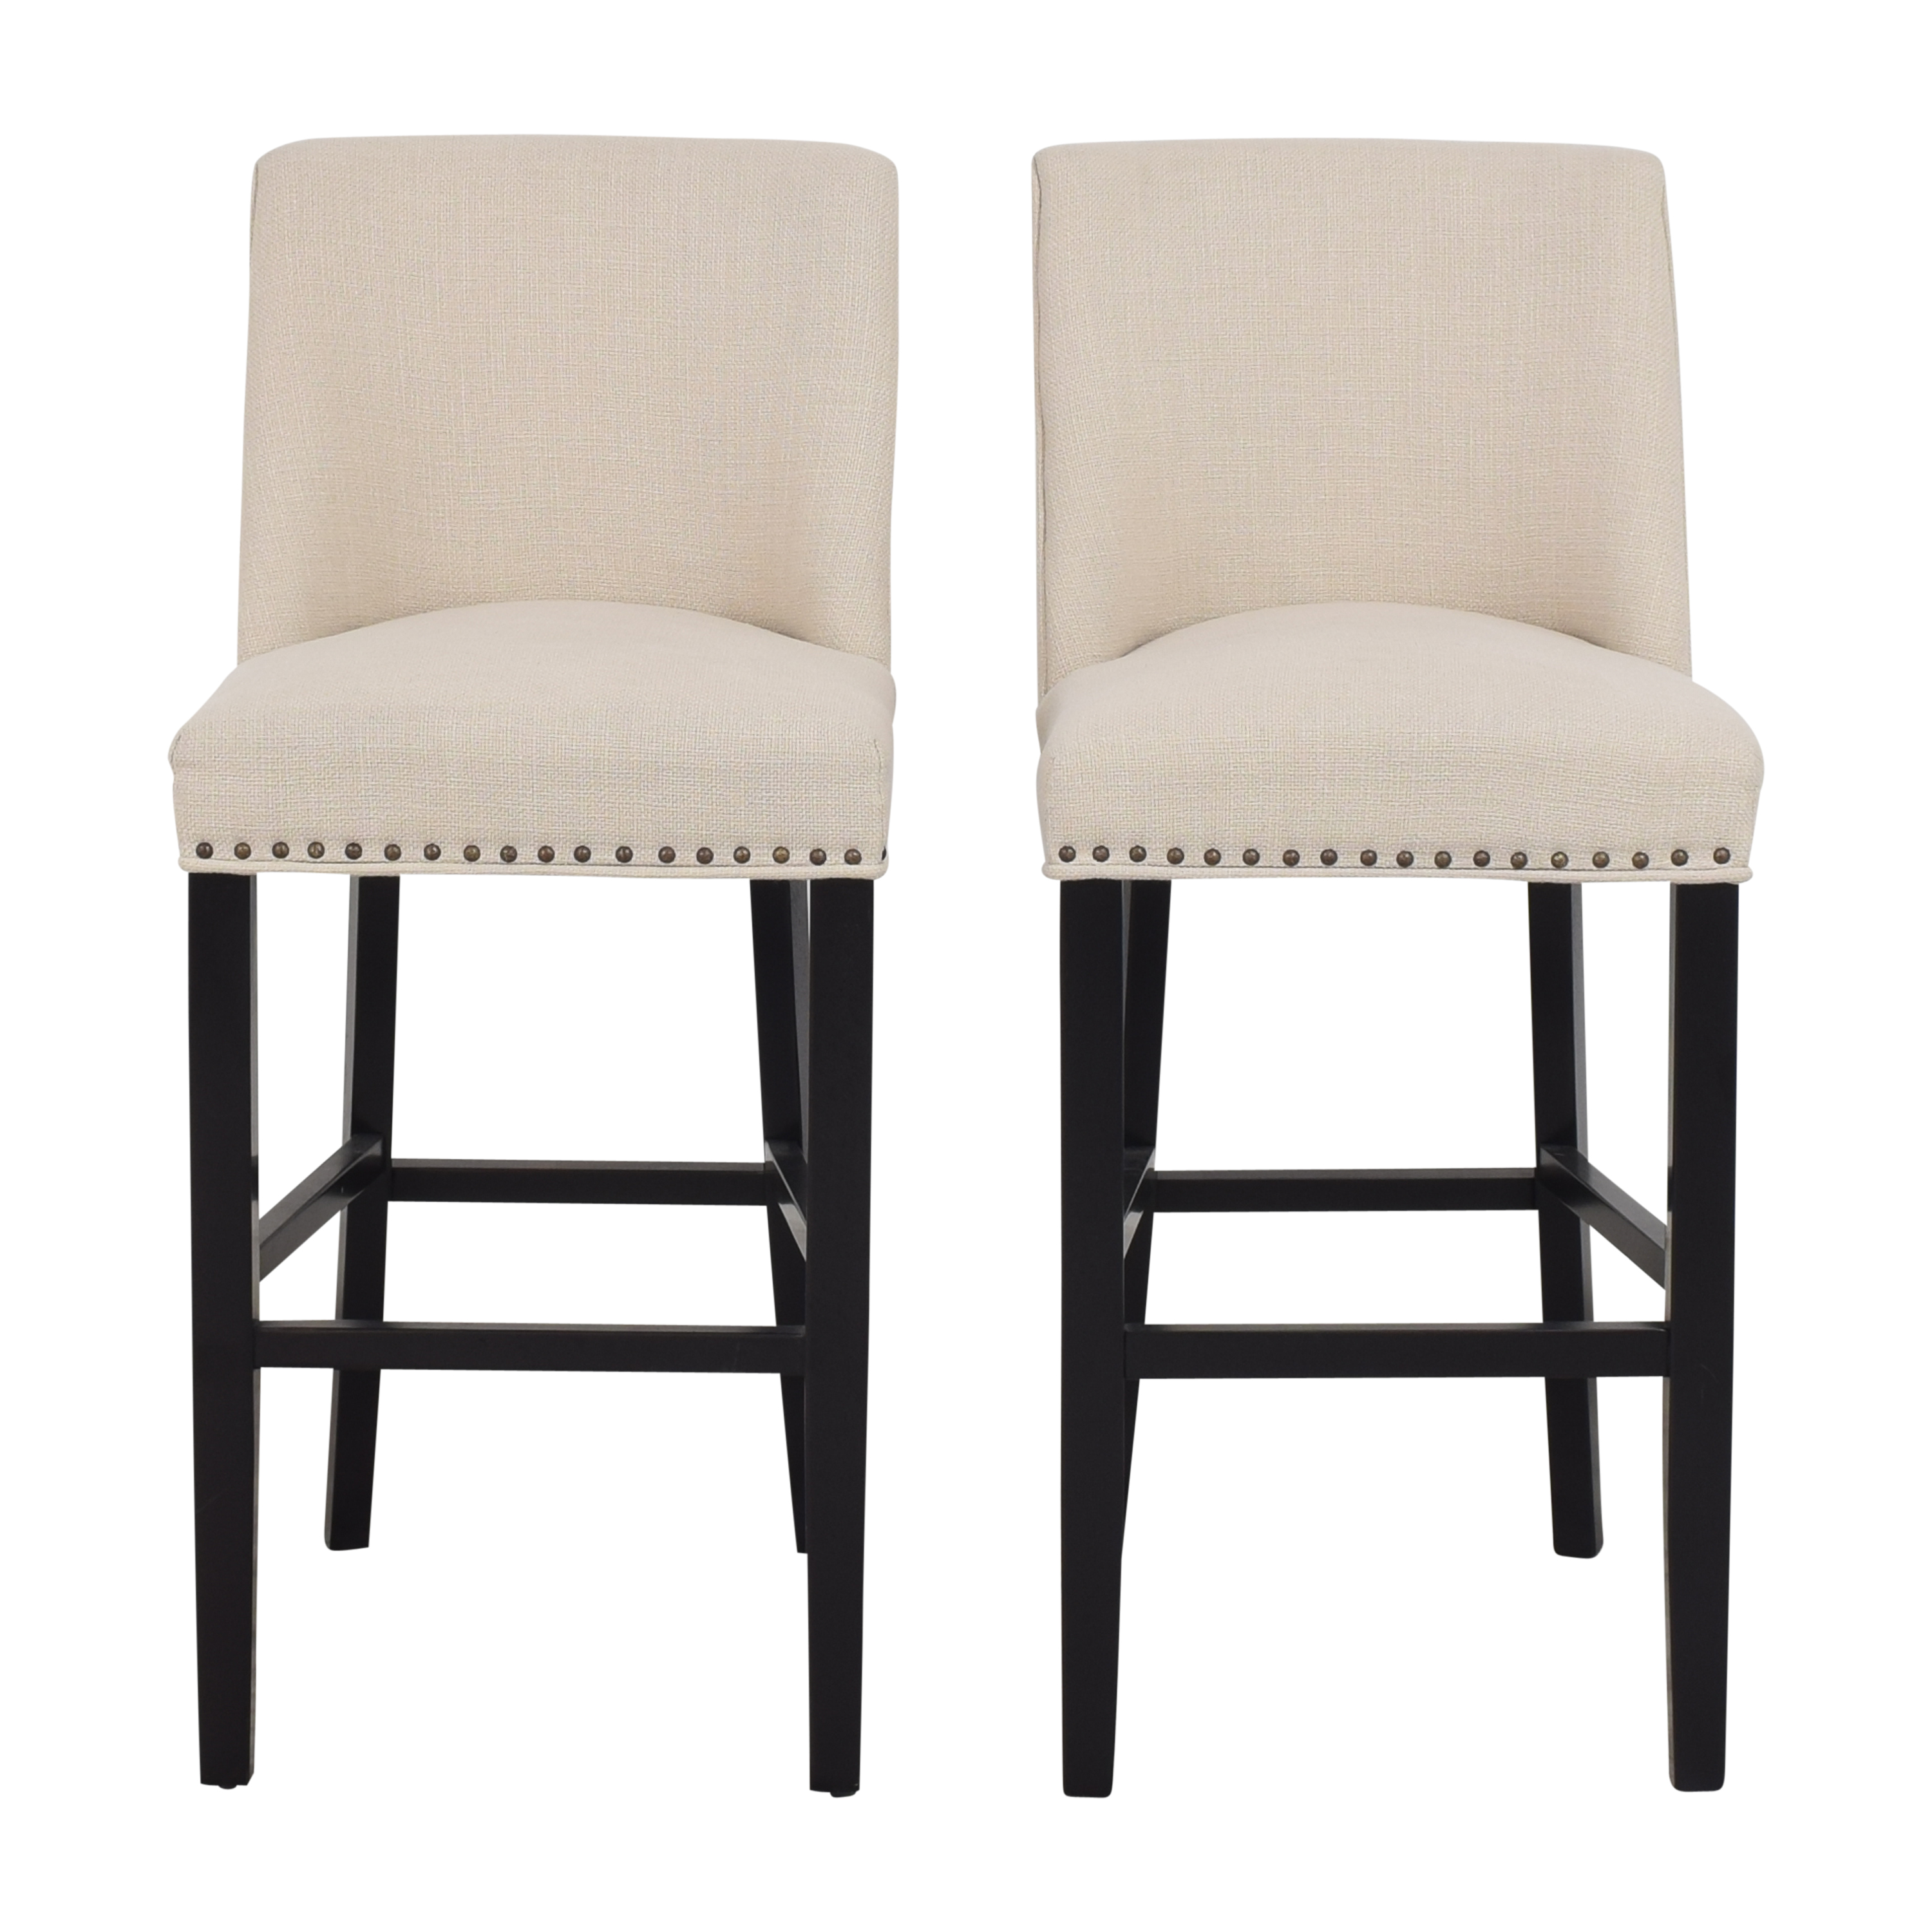 Pier 1 Corrine Bar Stools sale